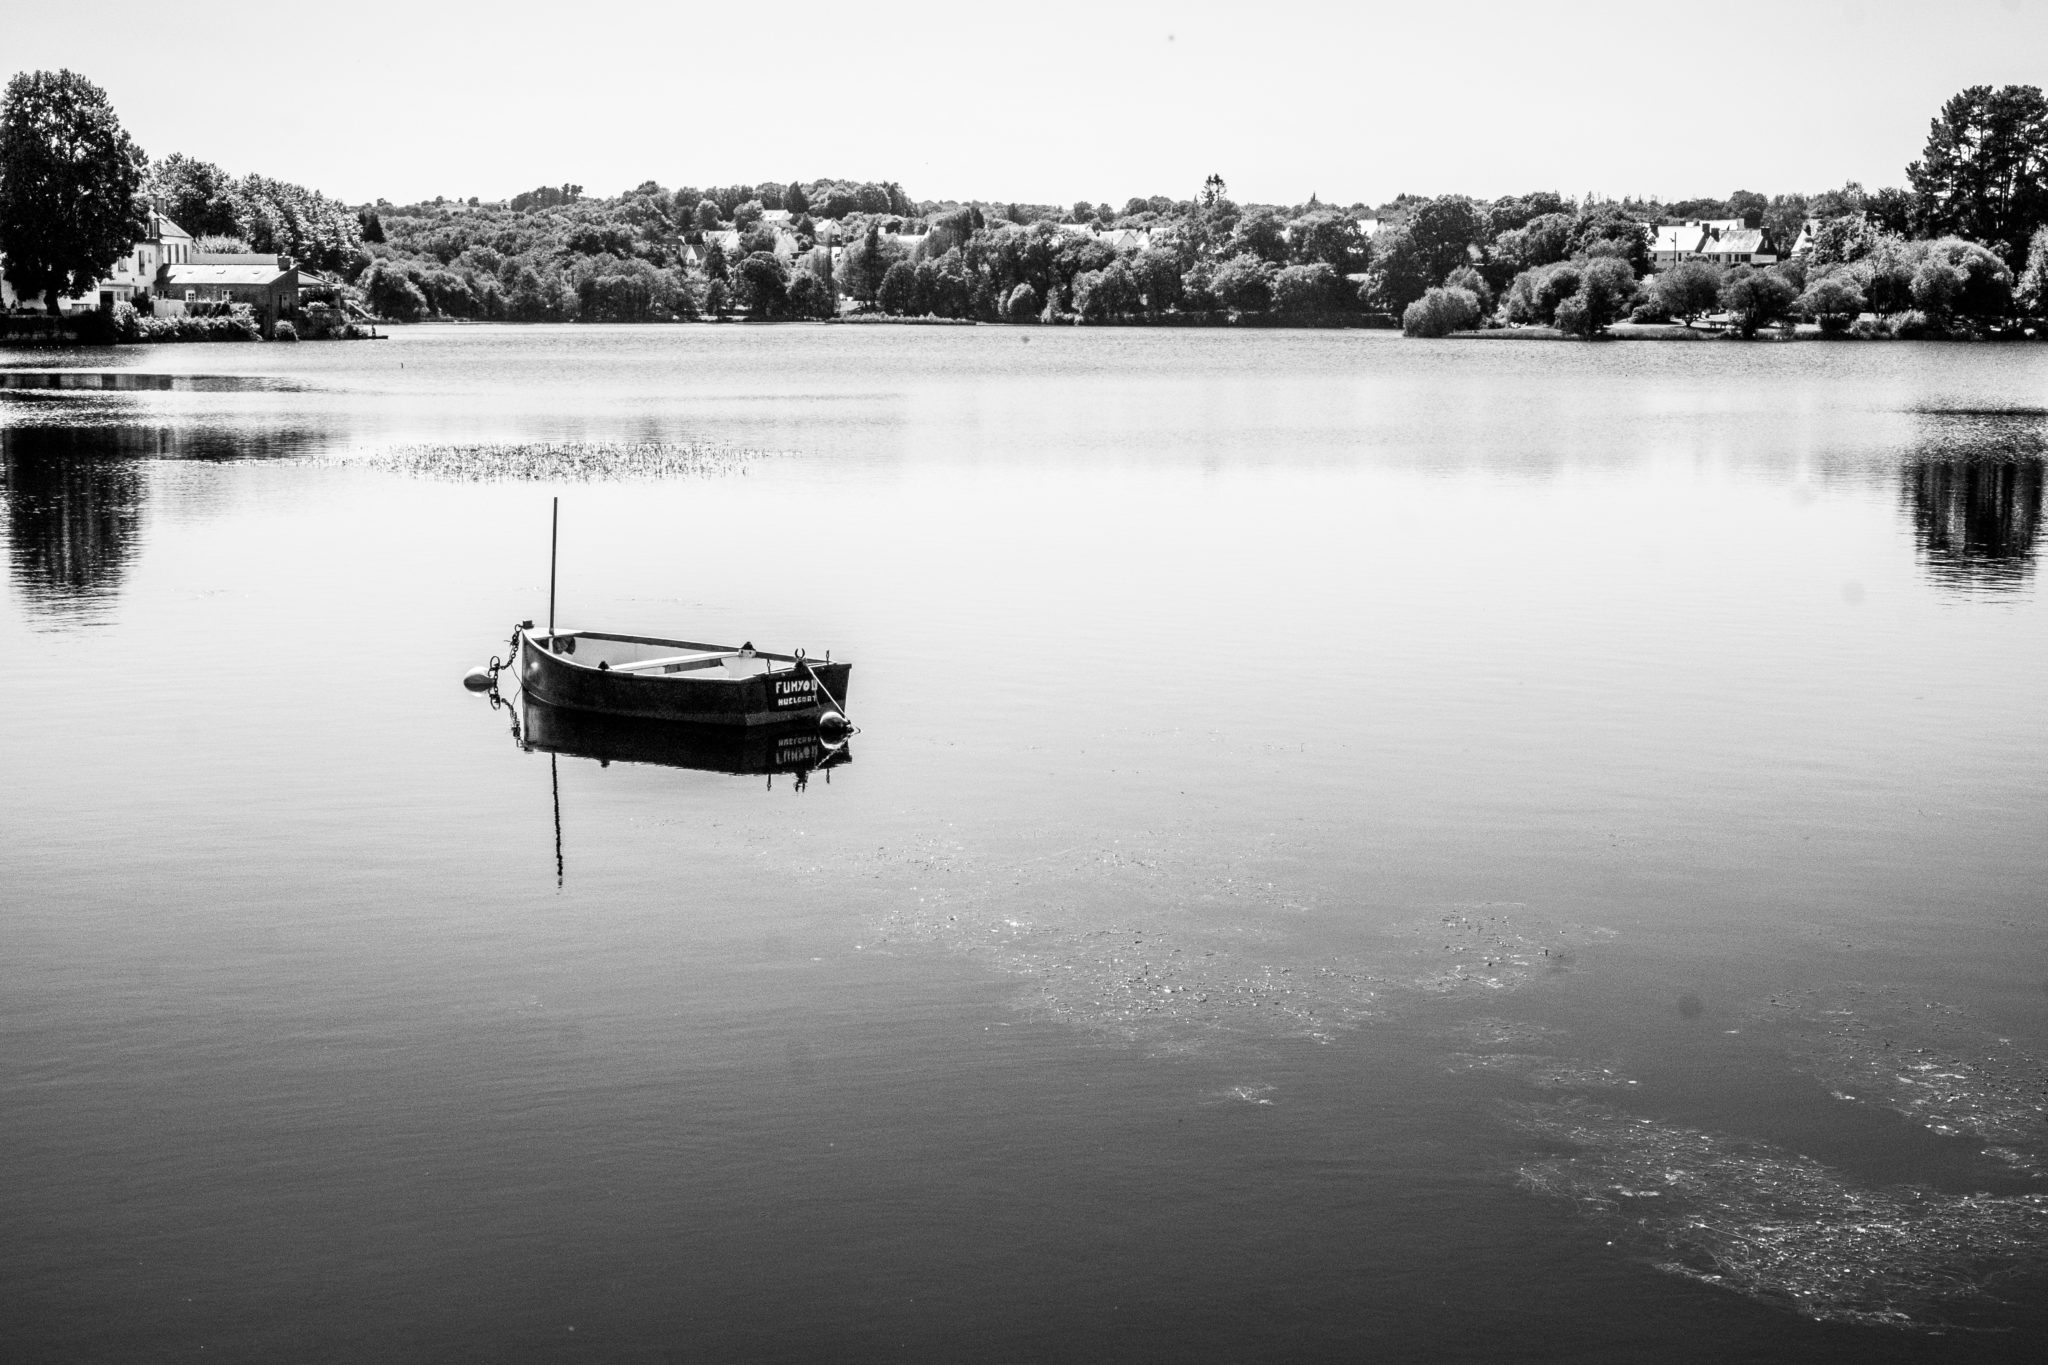 Calm in the Lake